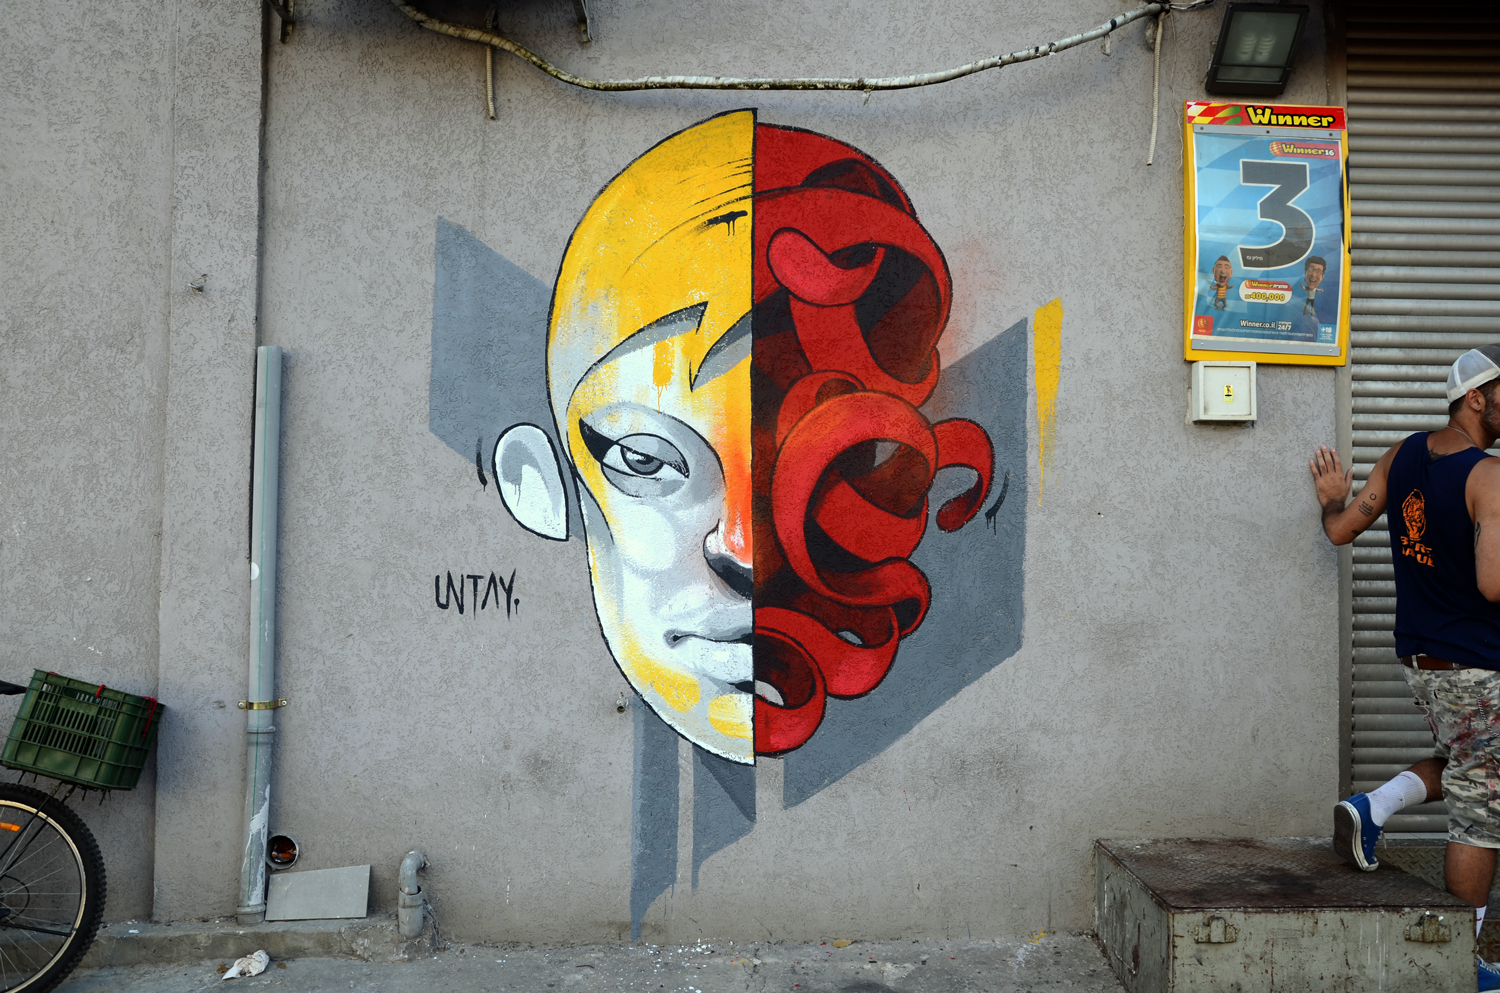 boaz_sides_untay_disturbed-_mind_mural